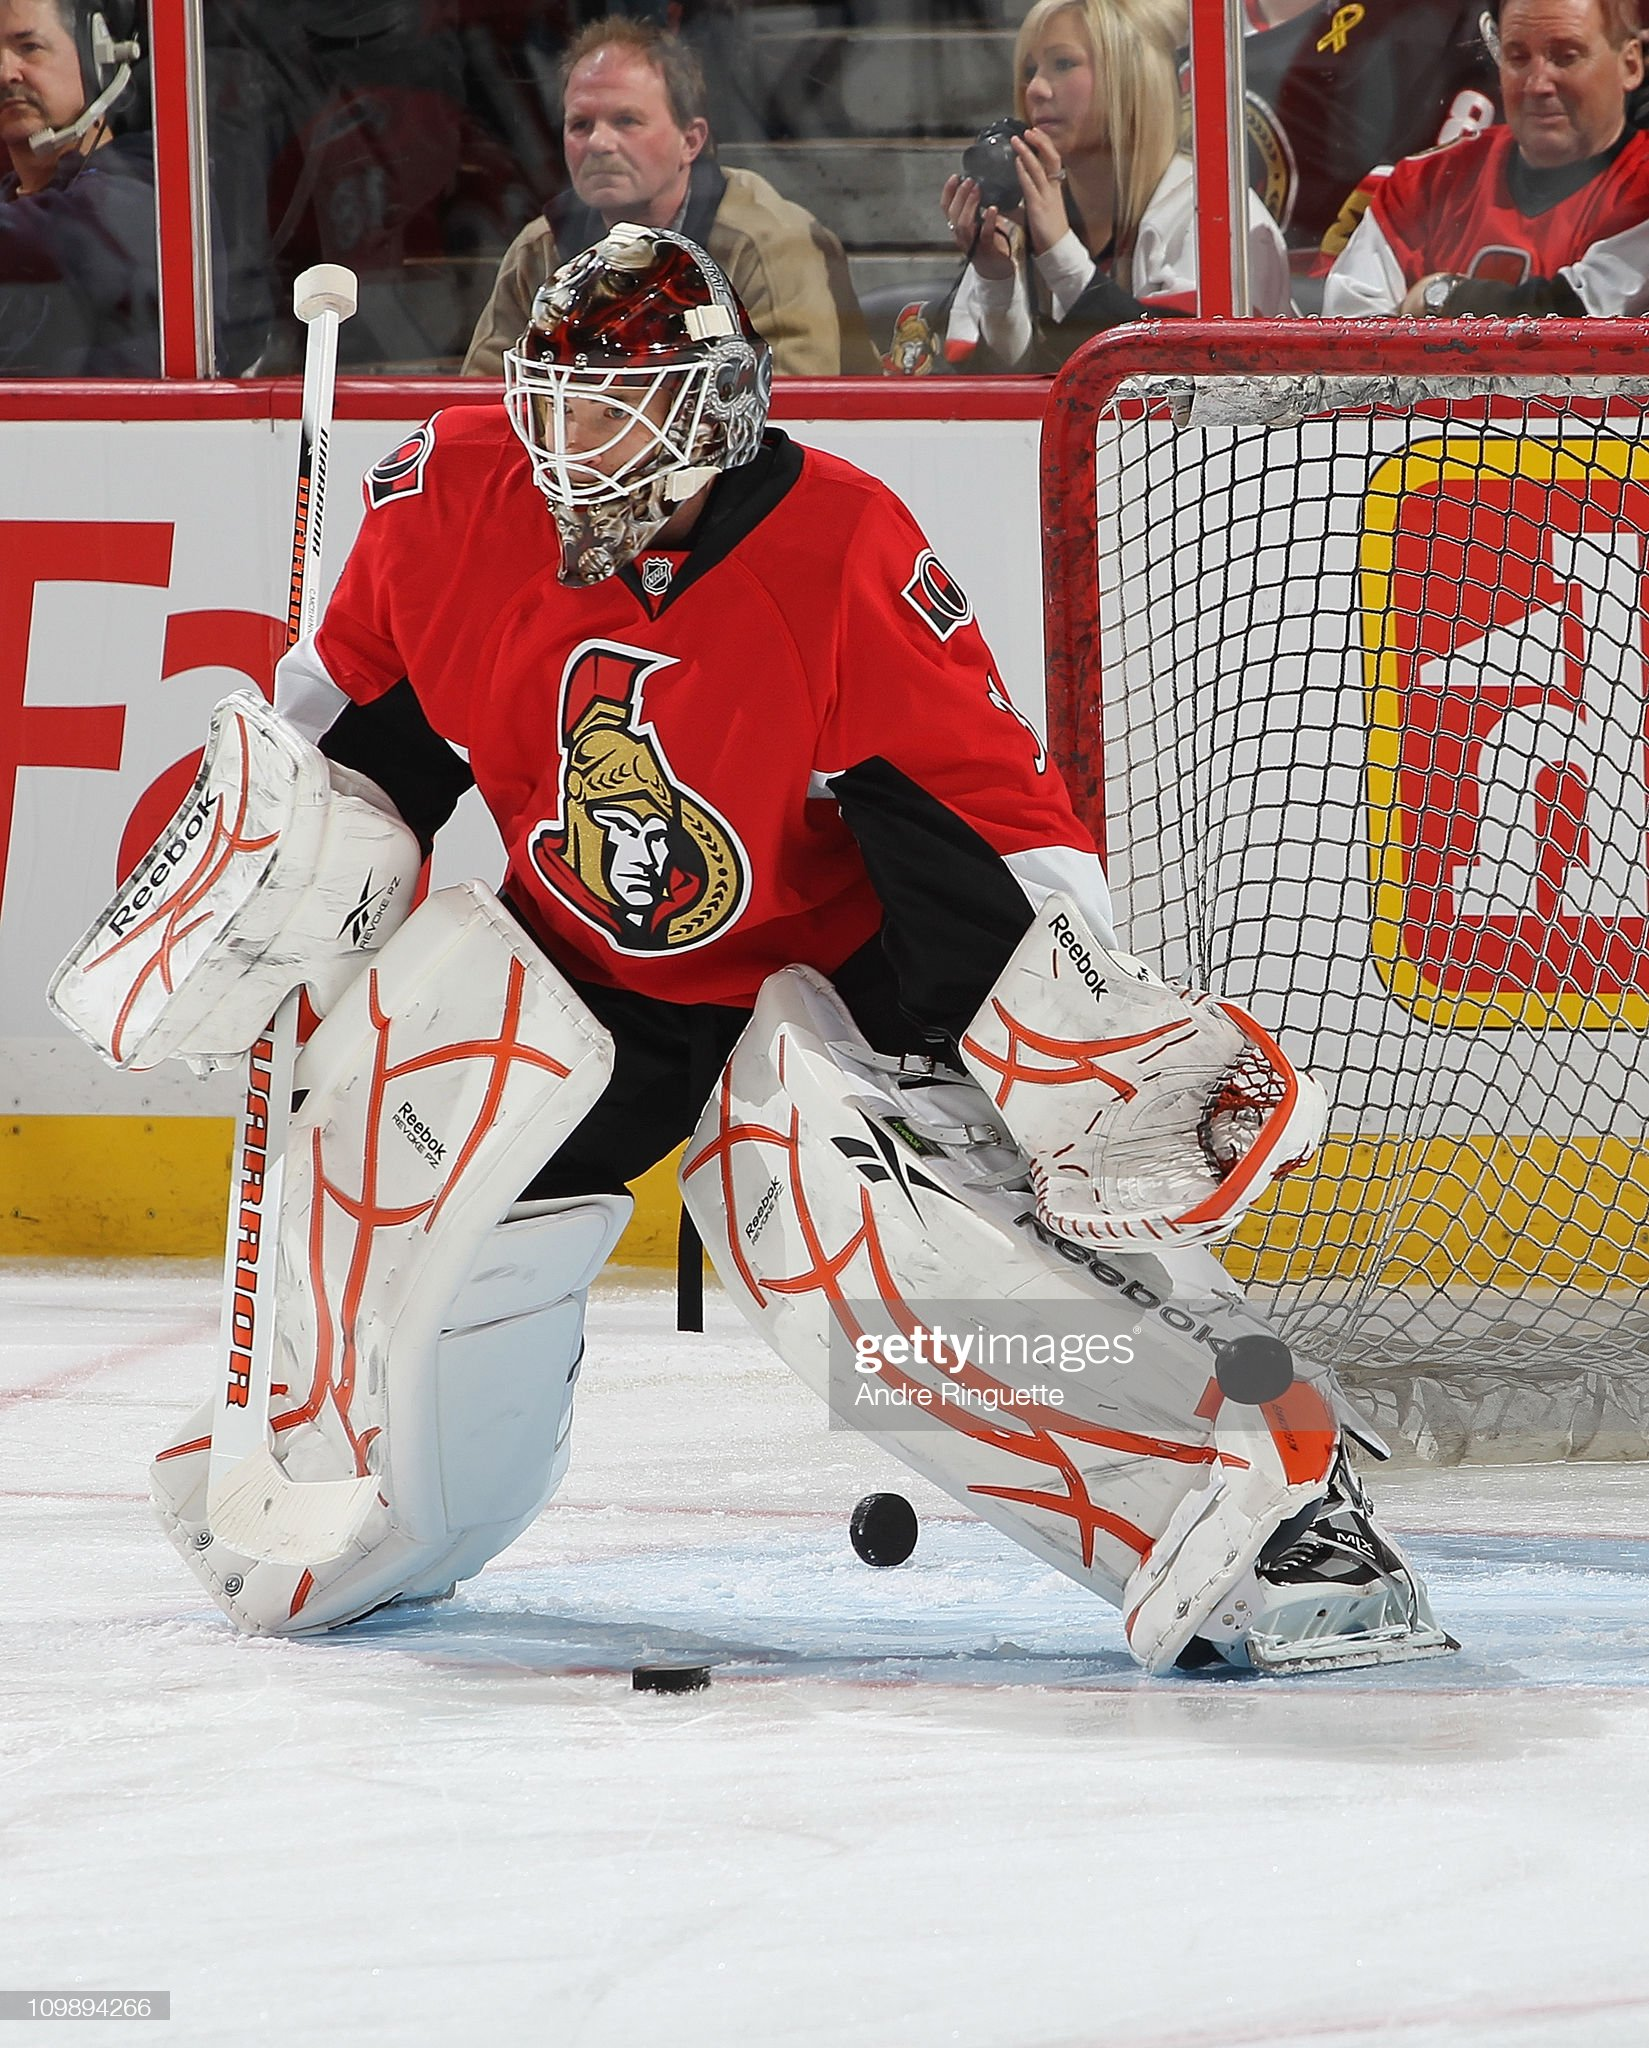 curtis-mcelhinney-of-the-ottawa-senators